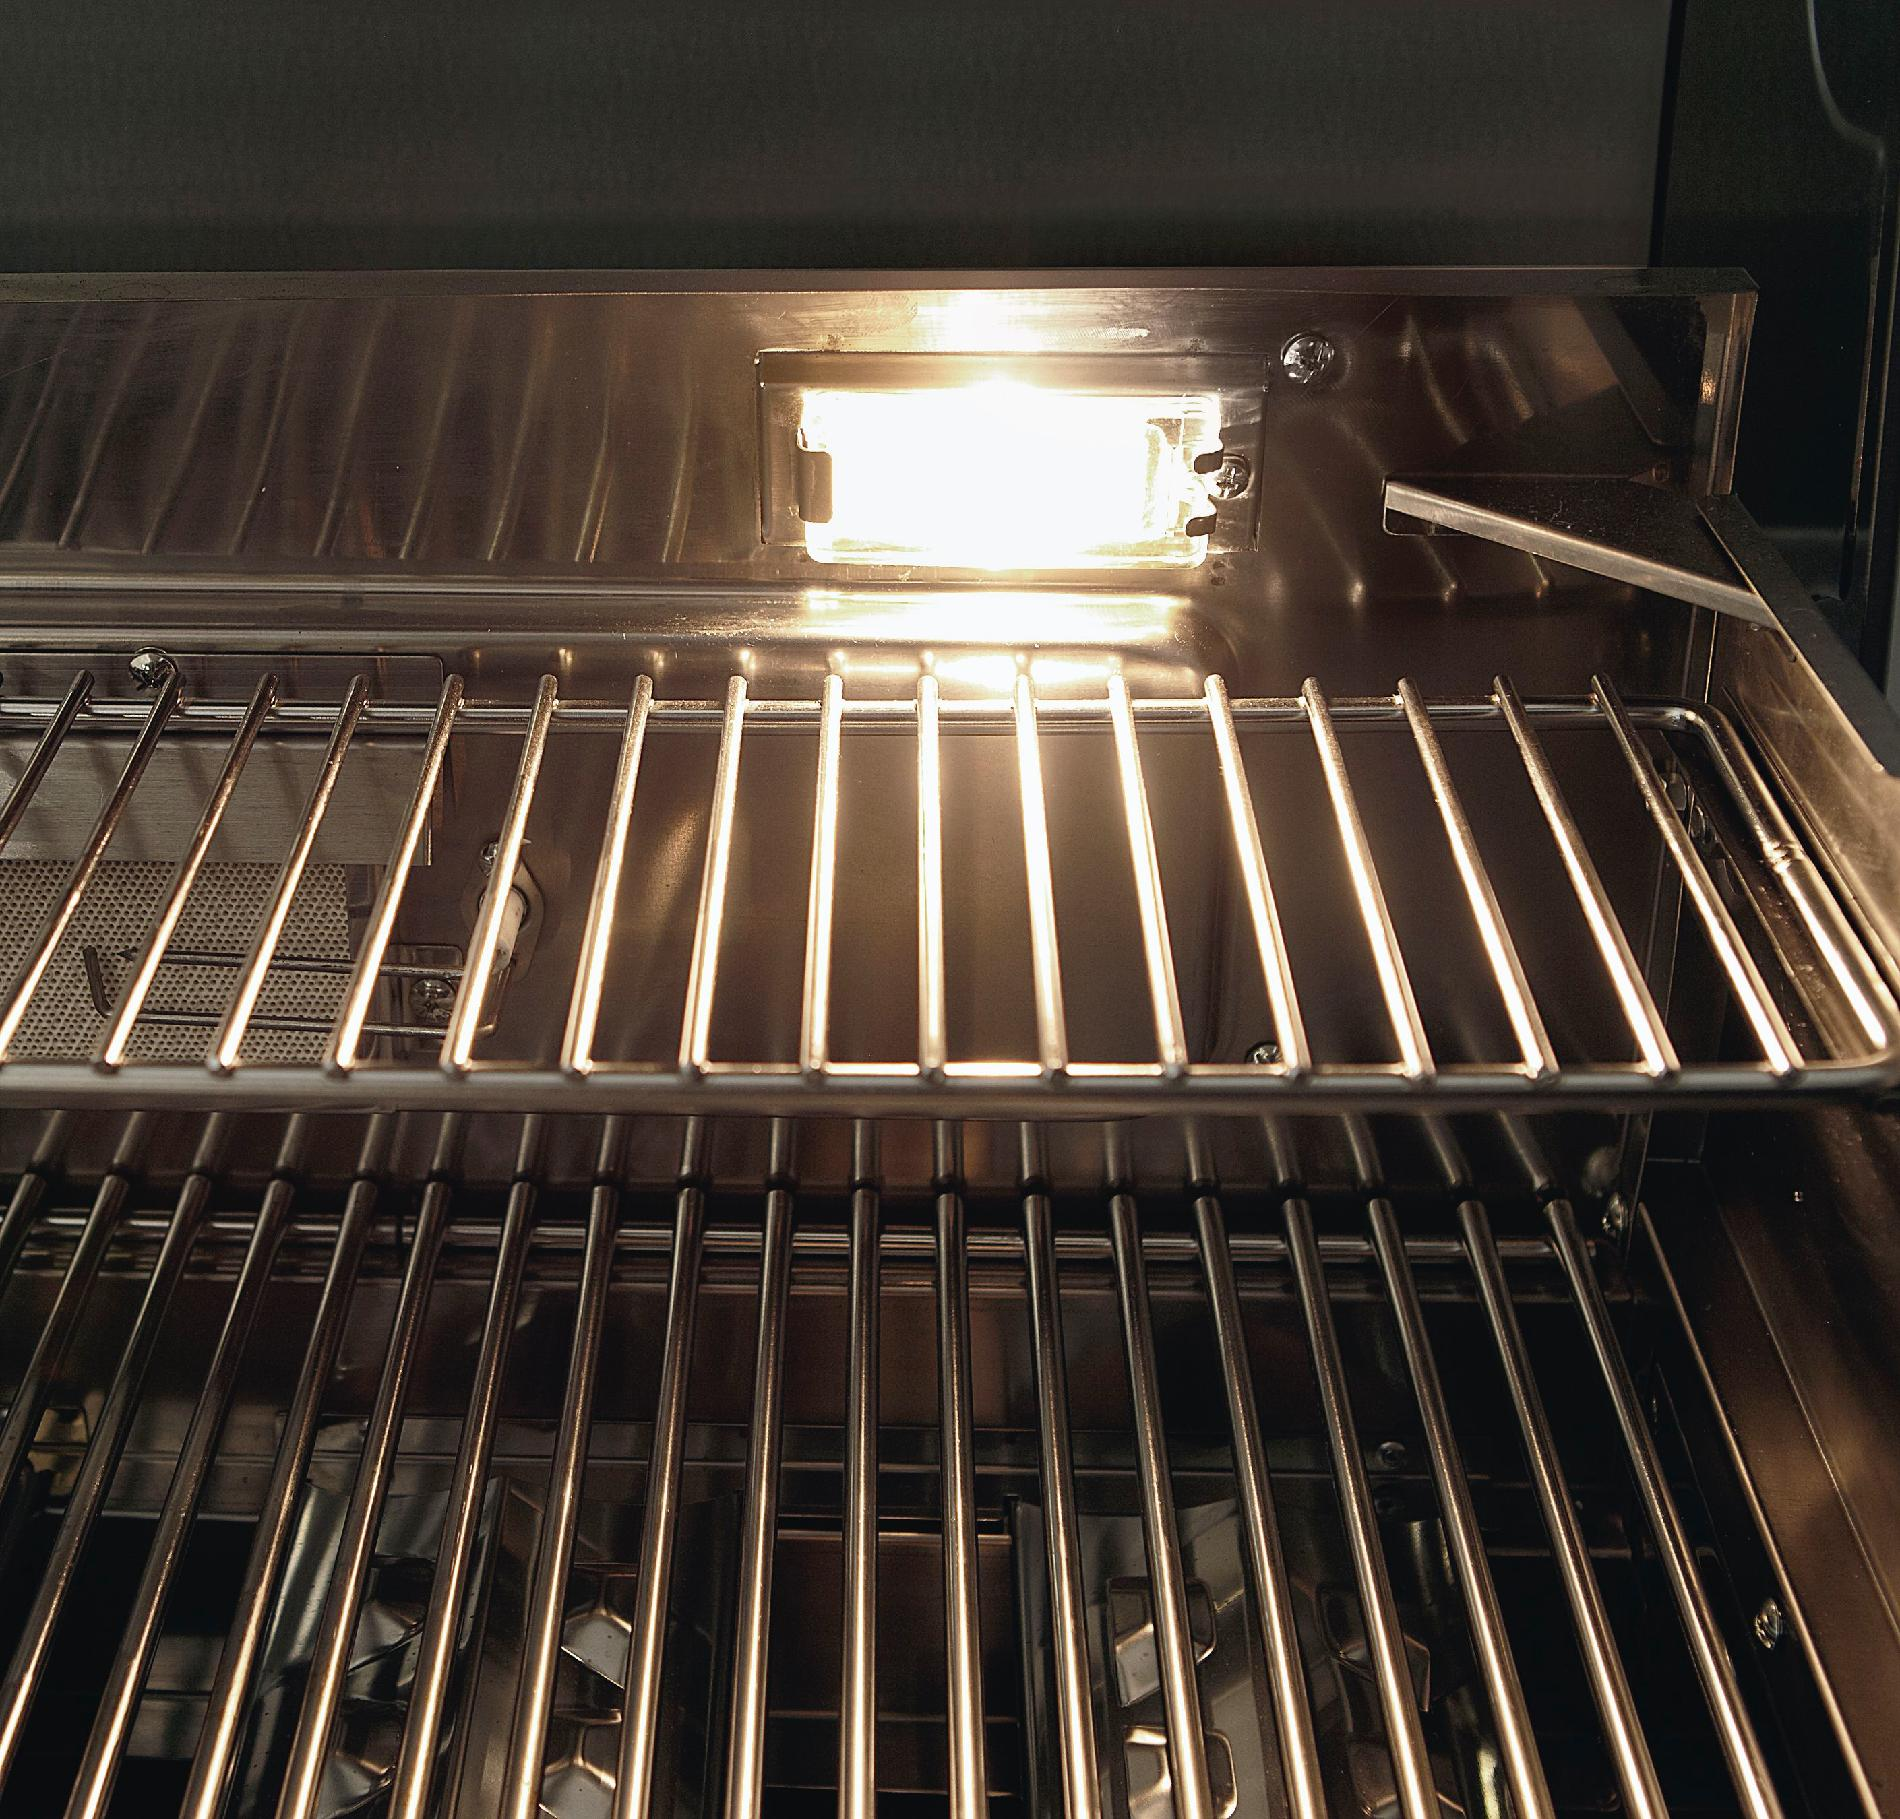 Kenmore 5-Burner Gas Grill with Ceramic Searing and Rotisserie Burners